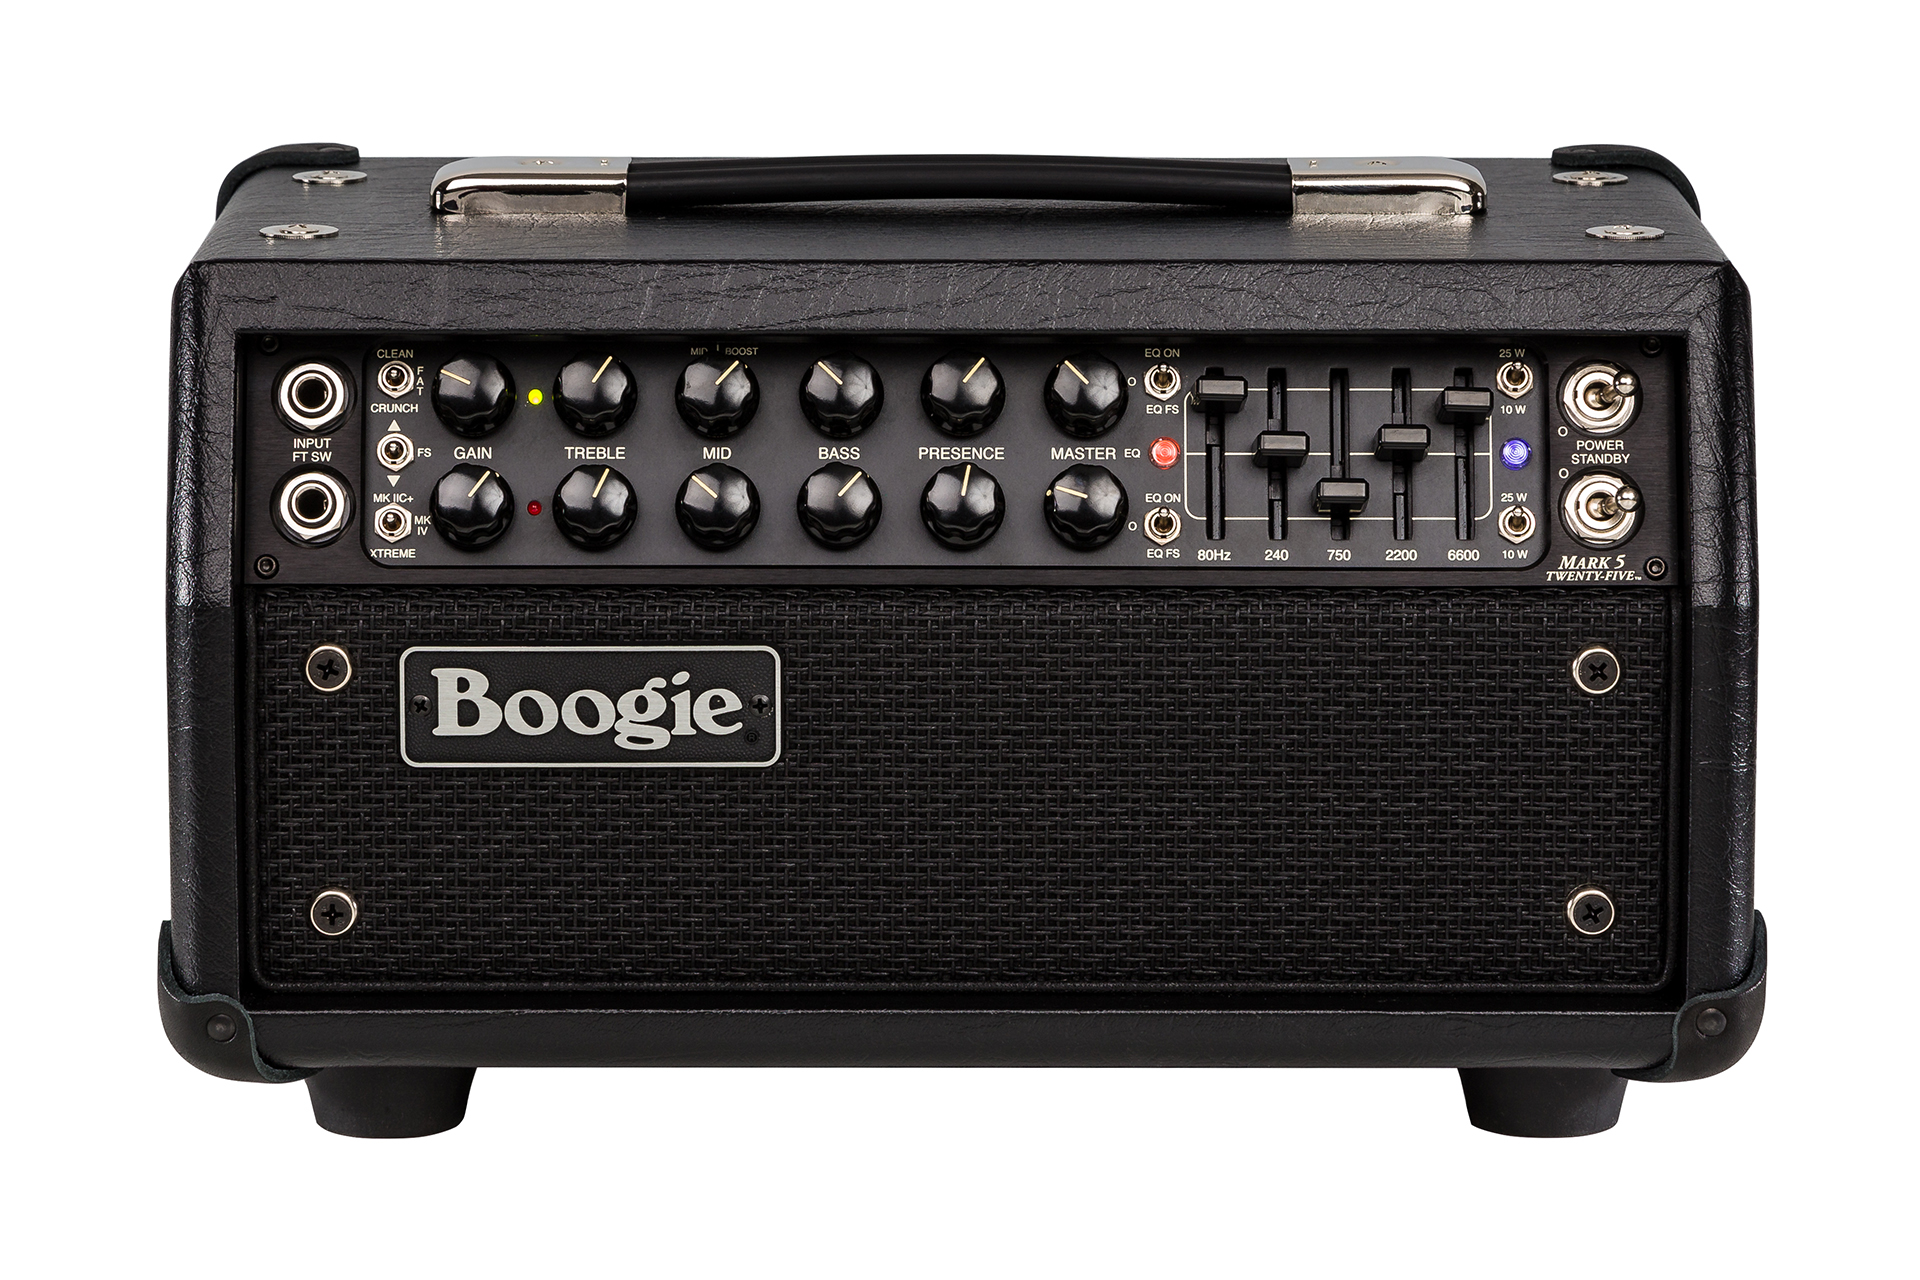 New MesaBoogie Mark Five 25 Provides a Greatest Hits